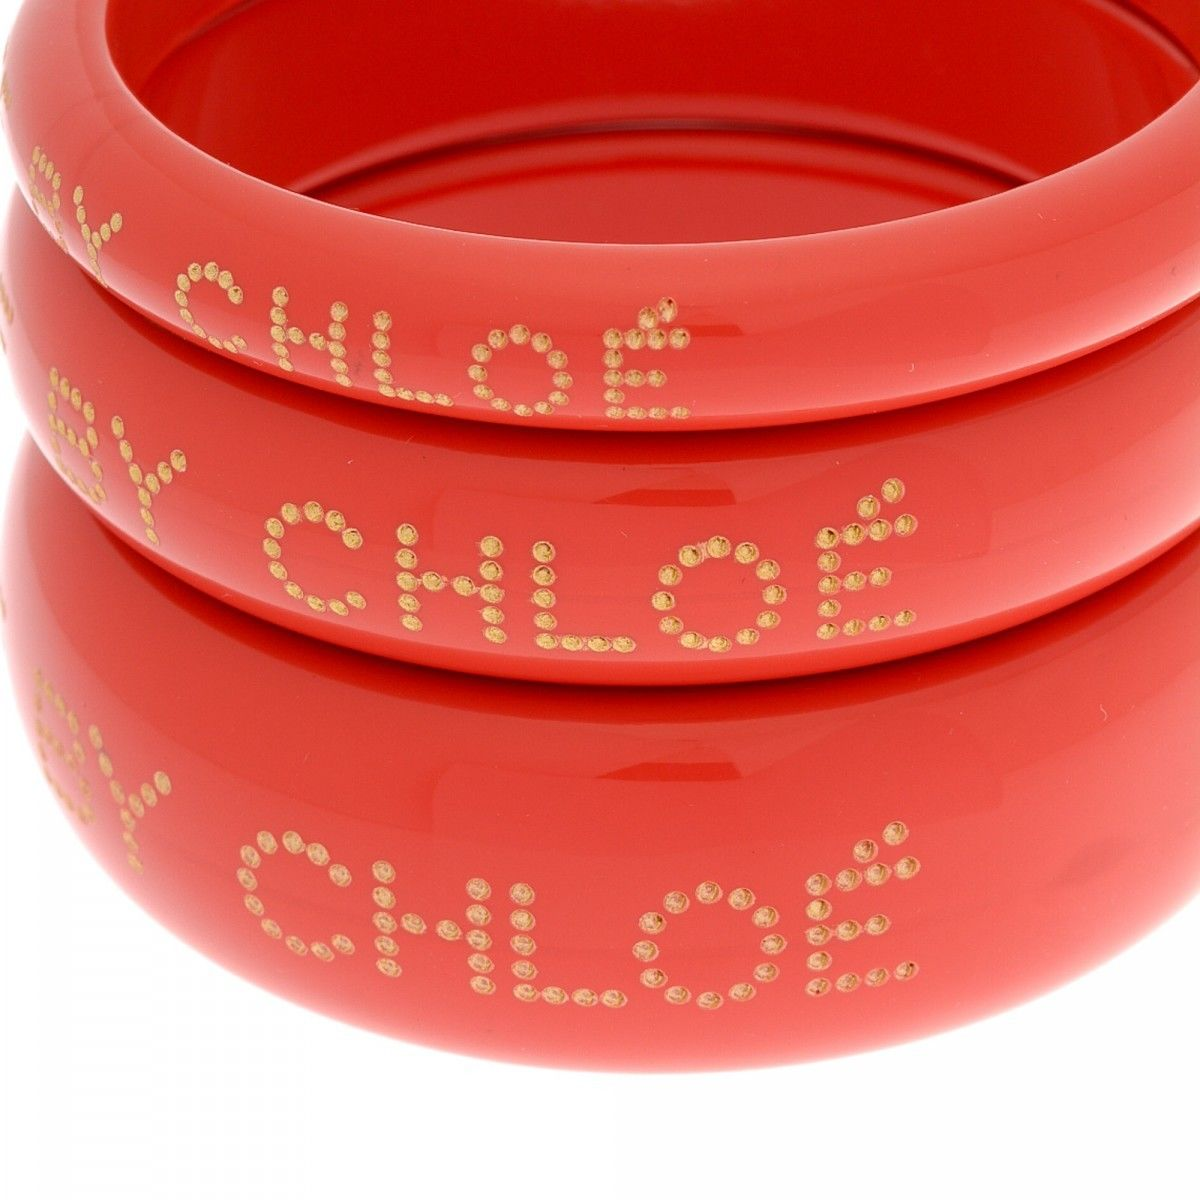 e3b22211d97d1 See by Chloé Set of 3 Bracelets 21cm Resin - LXRandCo - Pre-Owned ...